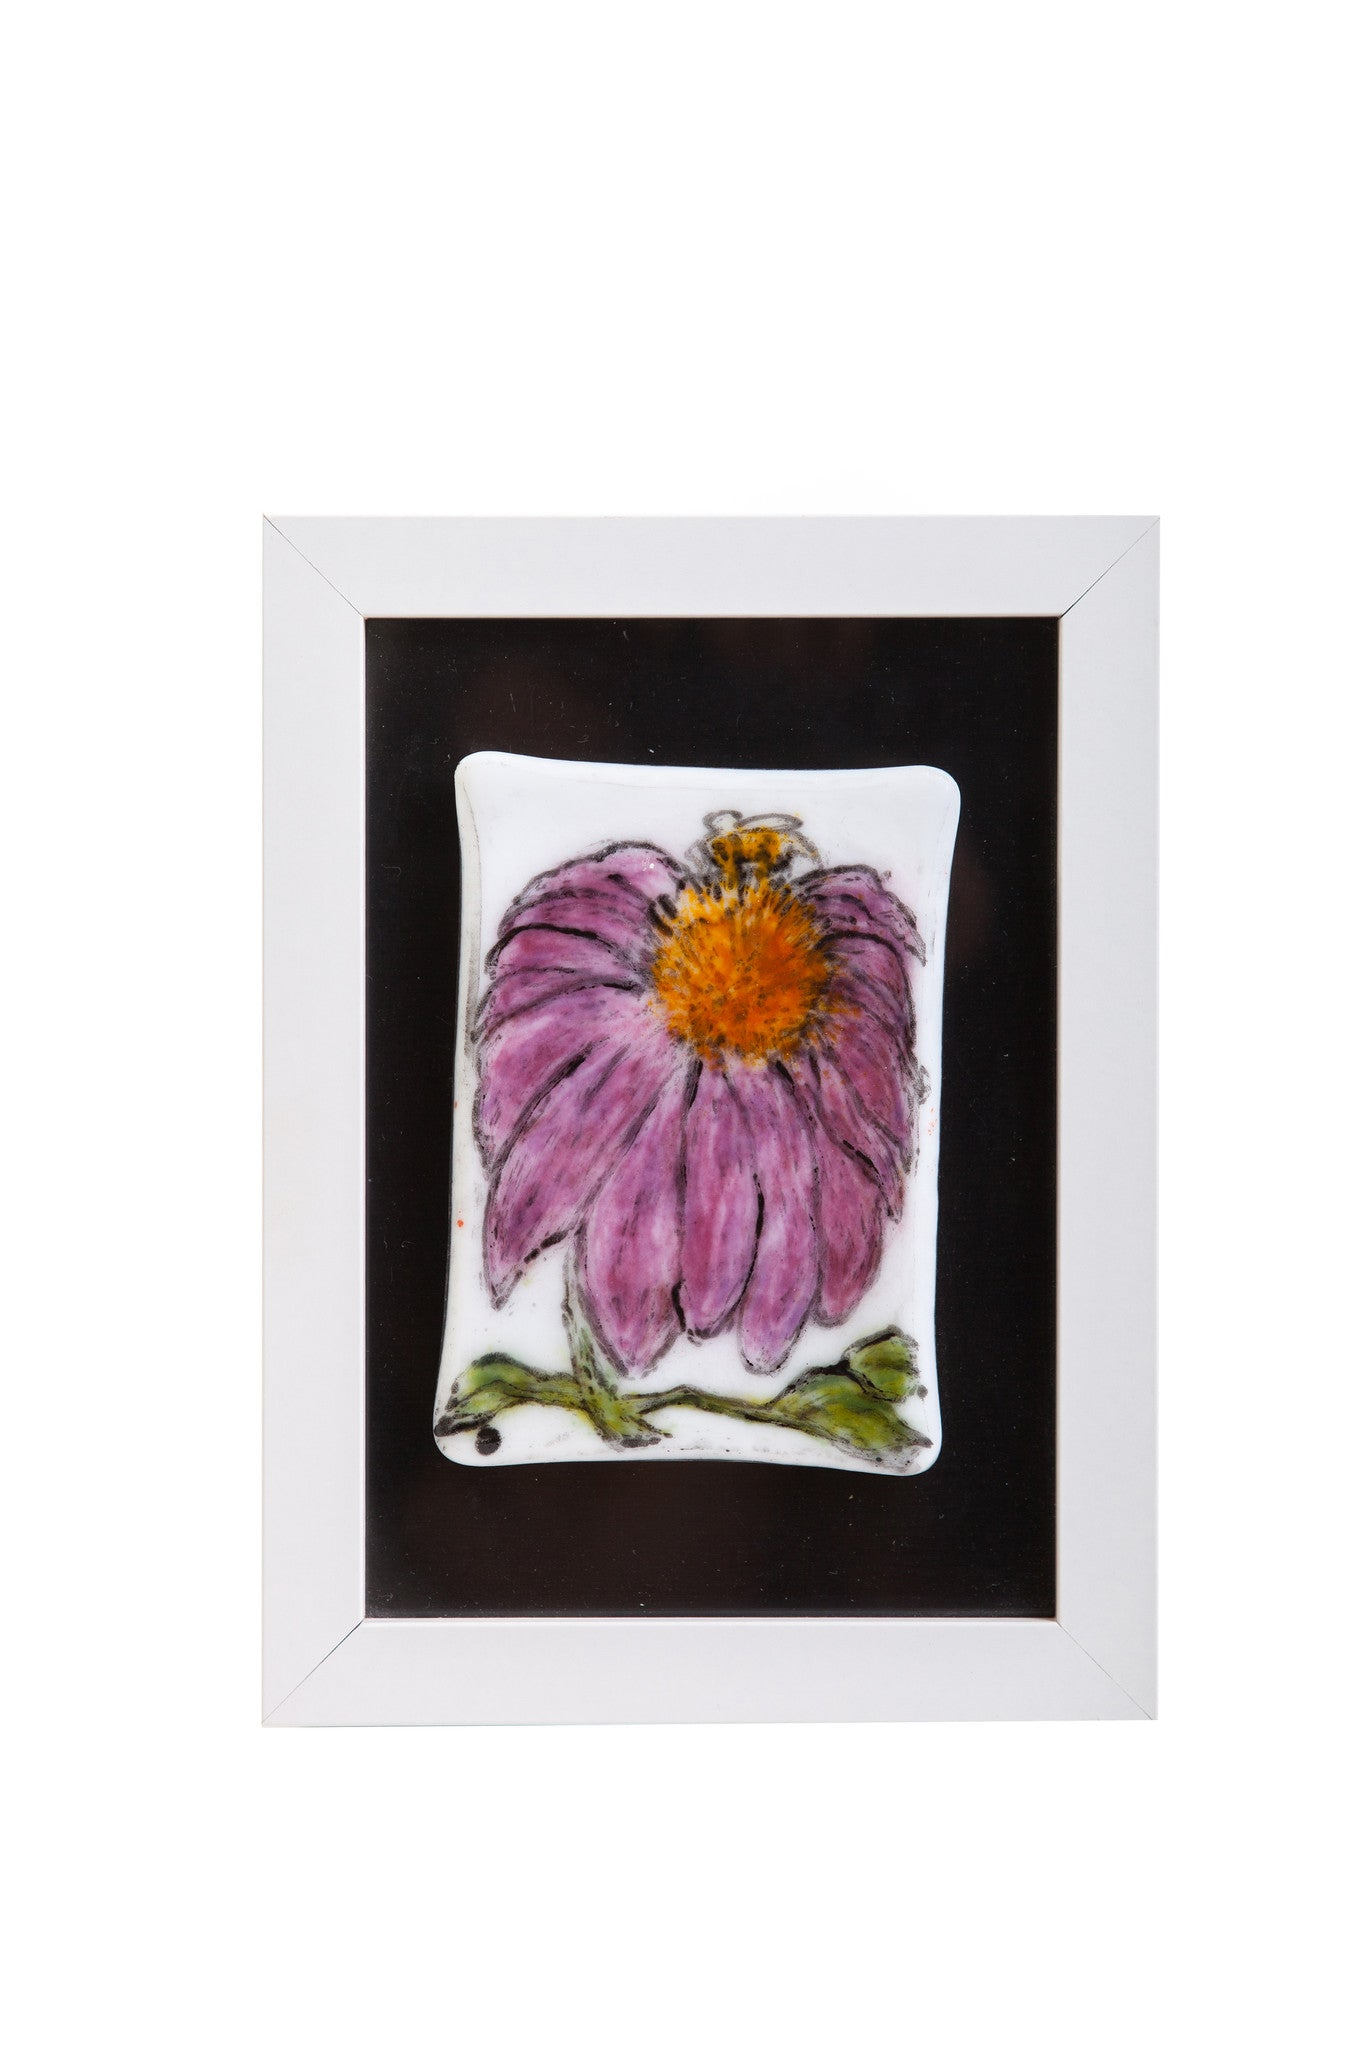 Odette Monaghan Fused Glass Echinacea Flower